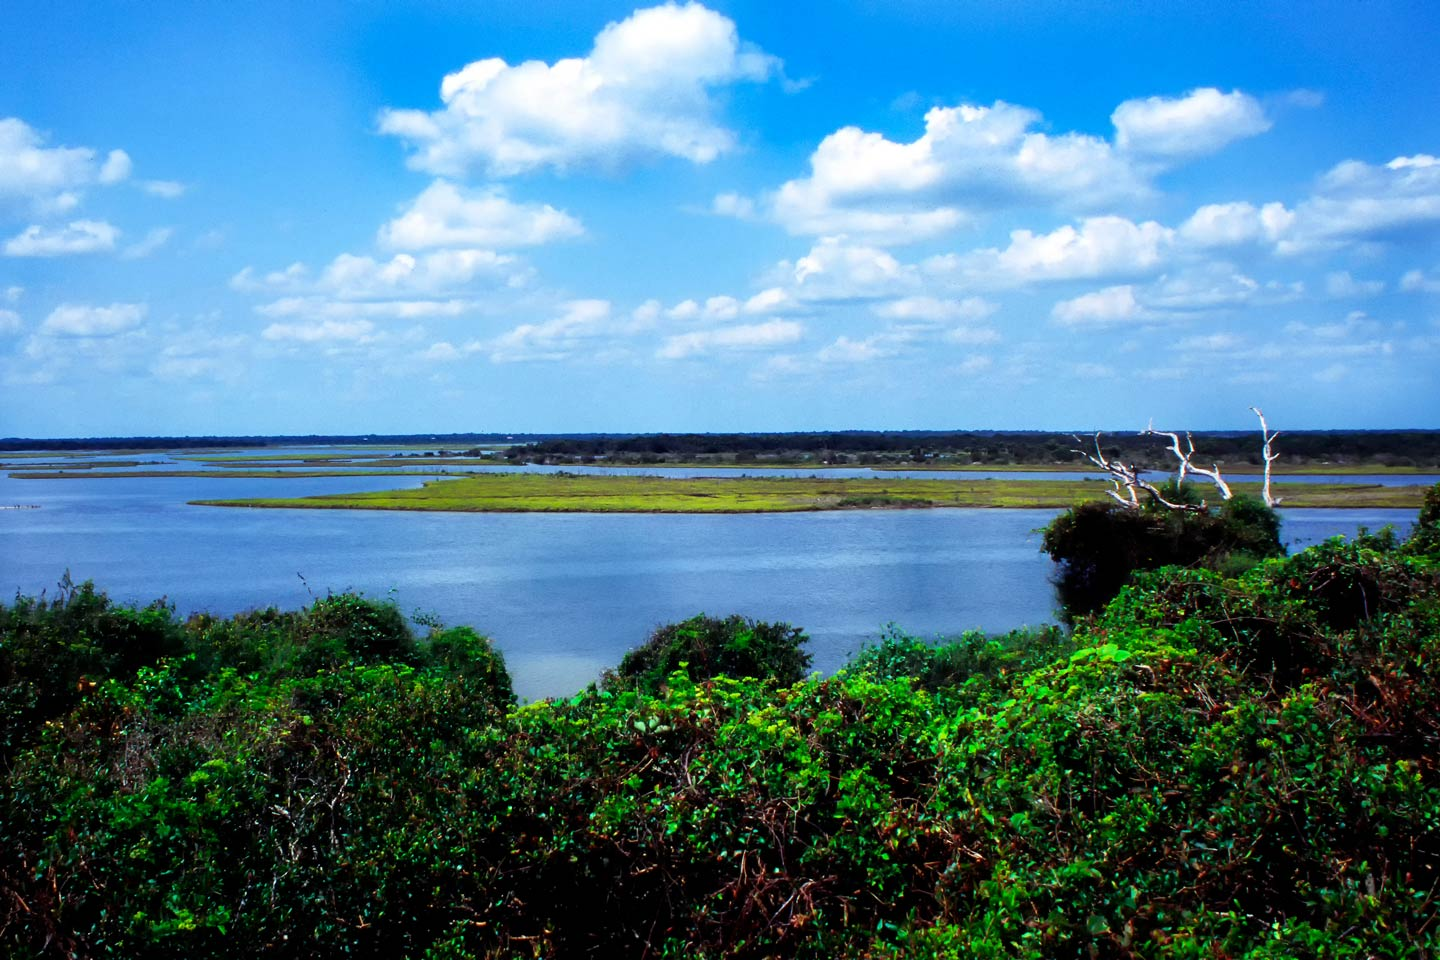 A view of Mosquito Lagoon from Turtle Mound on a sunny day, with greenery and the water in the distance